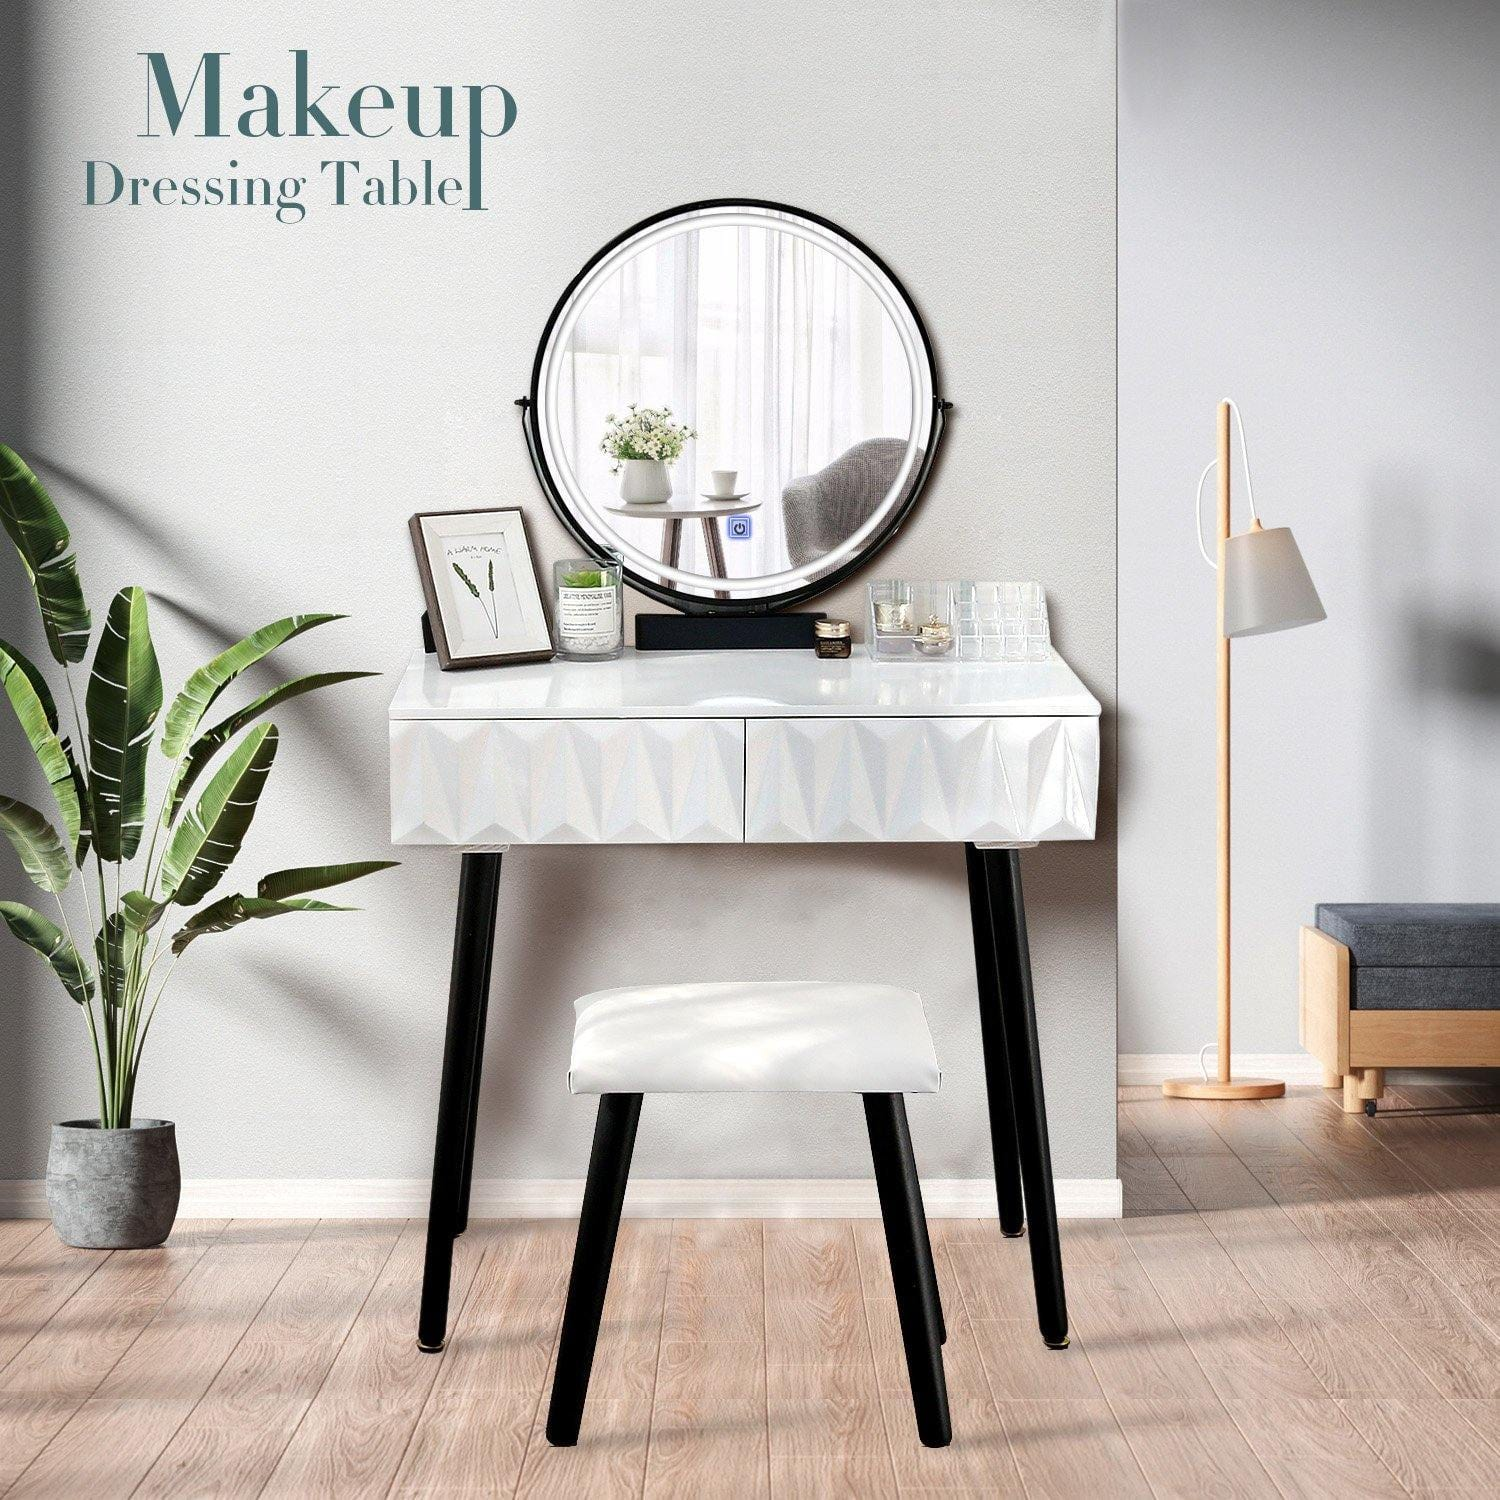 Vanity Table Set With Adjustable Brightness Mirror(White) - Elecwish